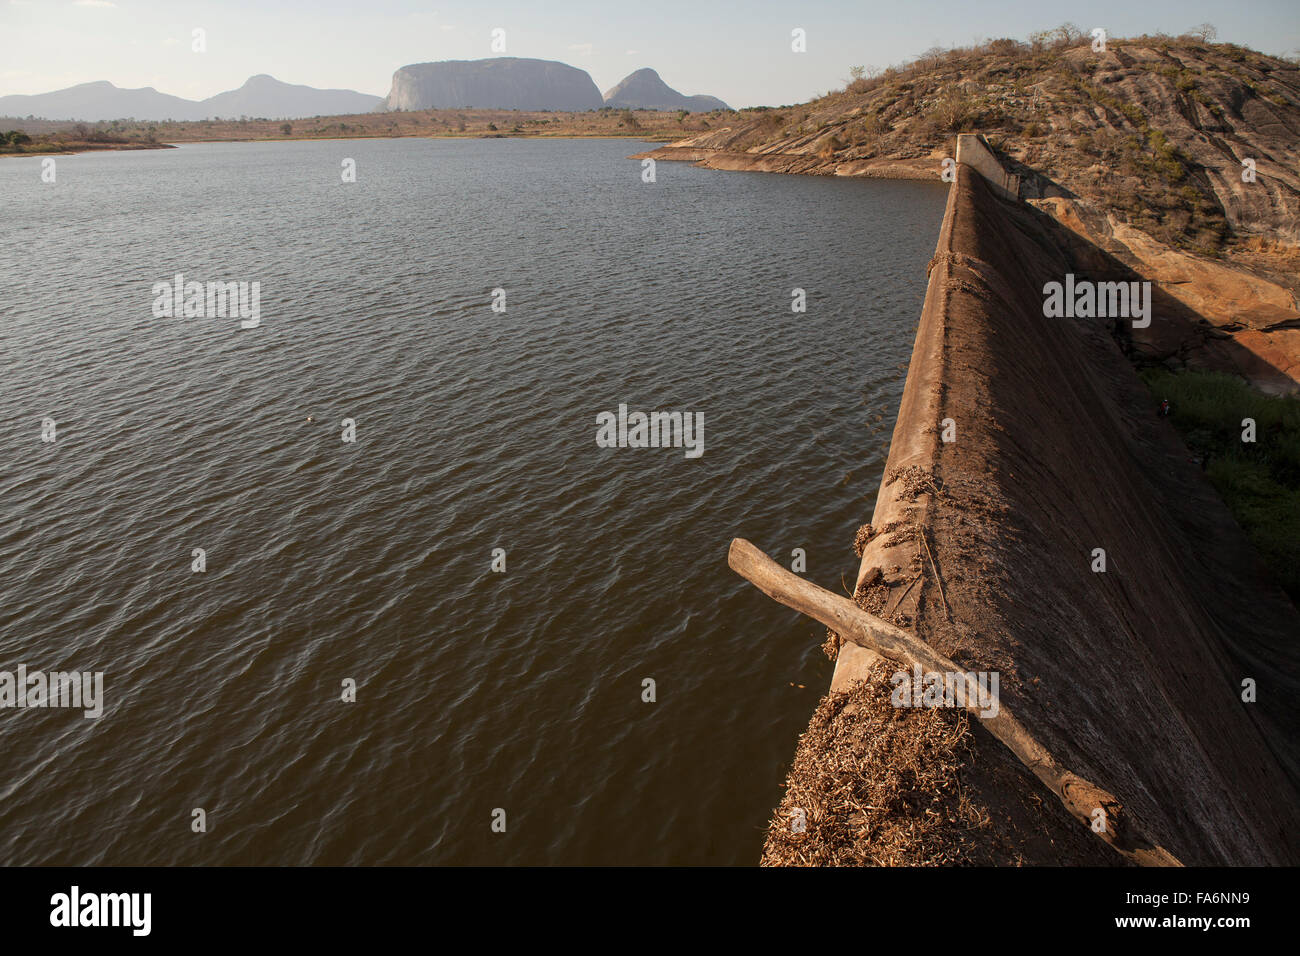 The Manapo Dam supplies water to the town of Nampula, Mozambique and areas beyond. - Stock Image